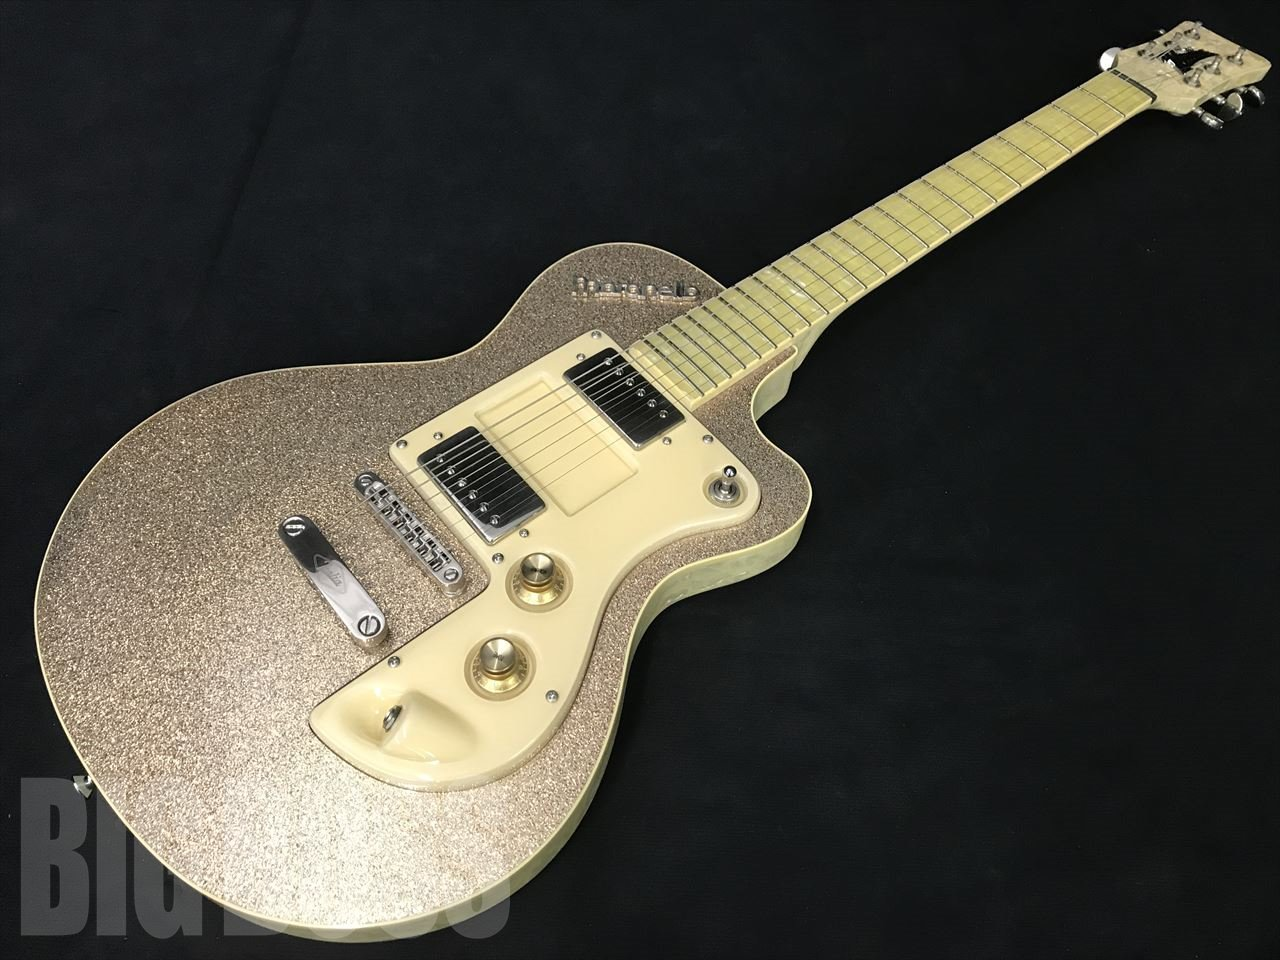 【中古品】Italia Guitars Maranello Classic 15th Anniversary